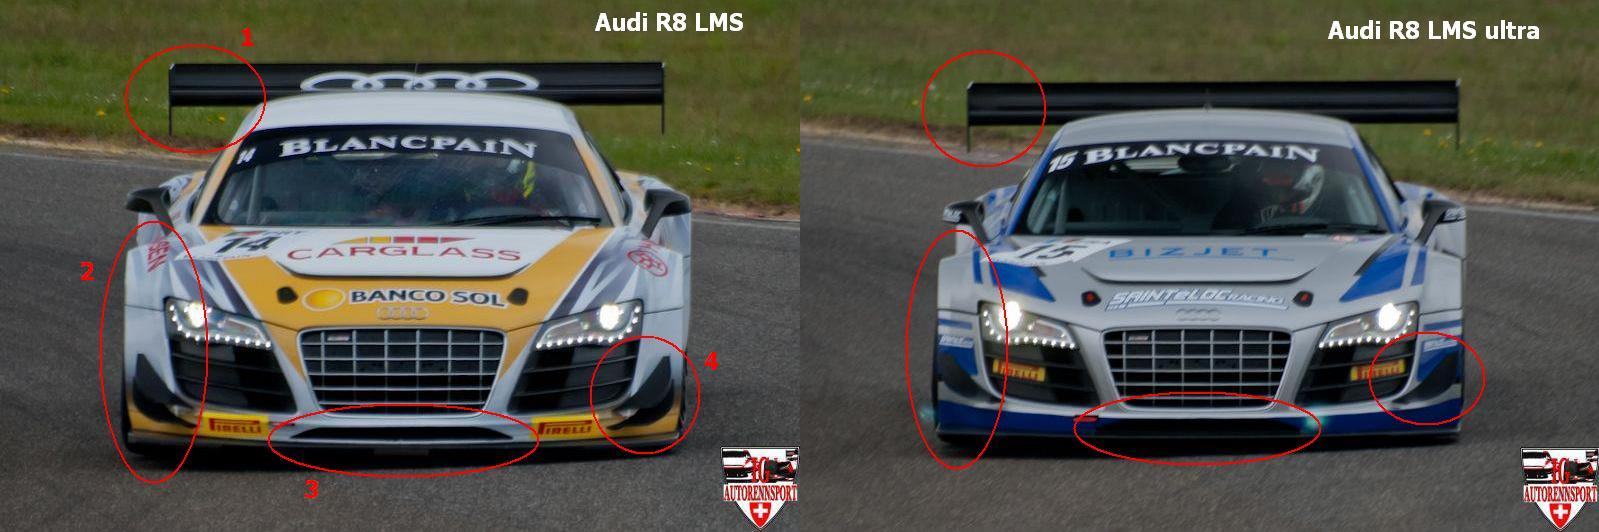 Gallery For > Audi R8 Lms Side View